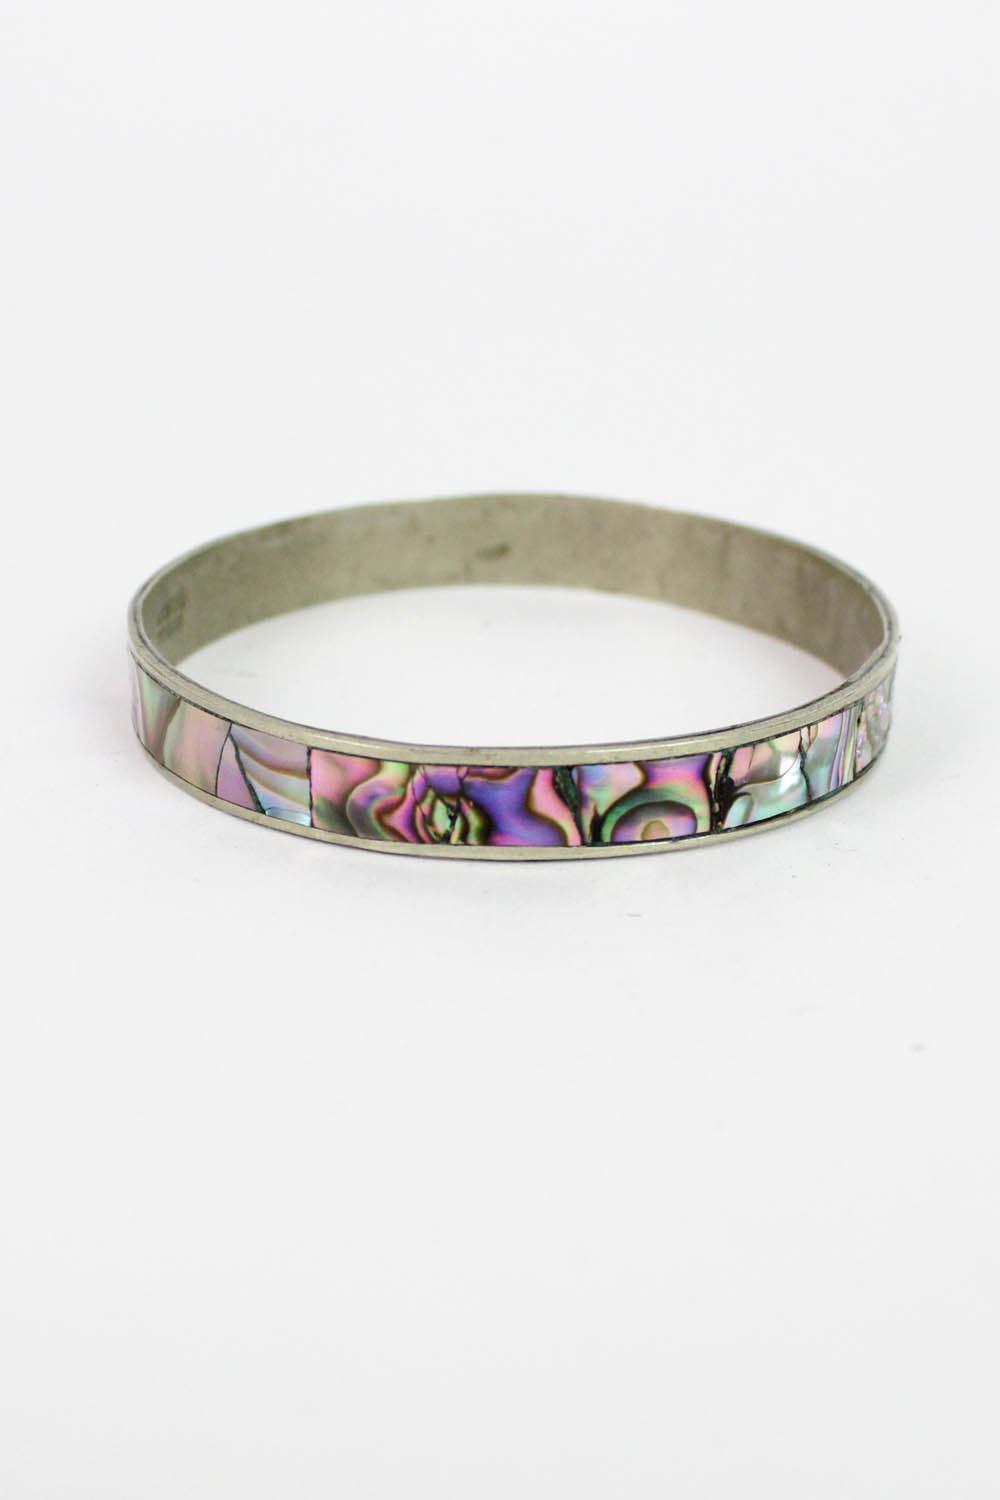 Iridescent Abalone Bangle